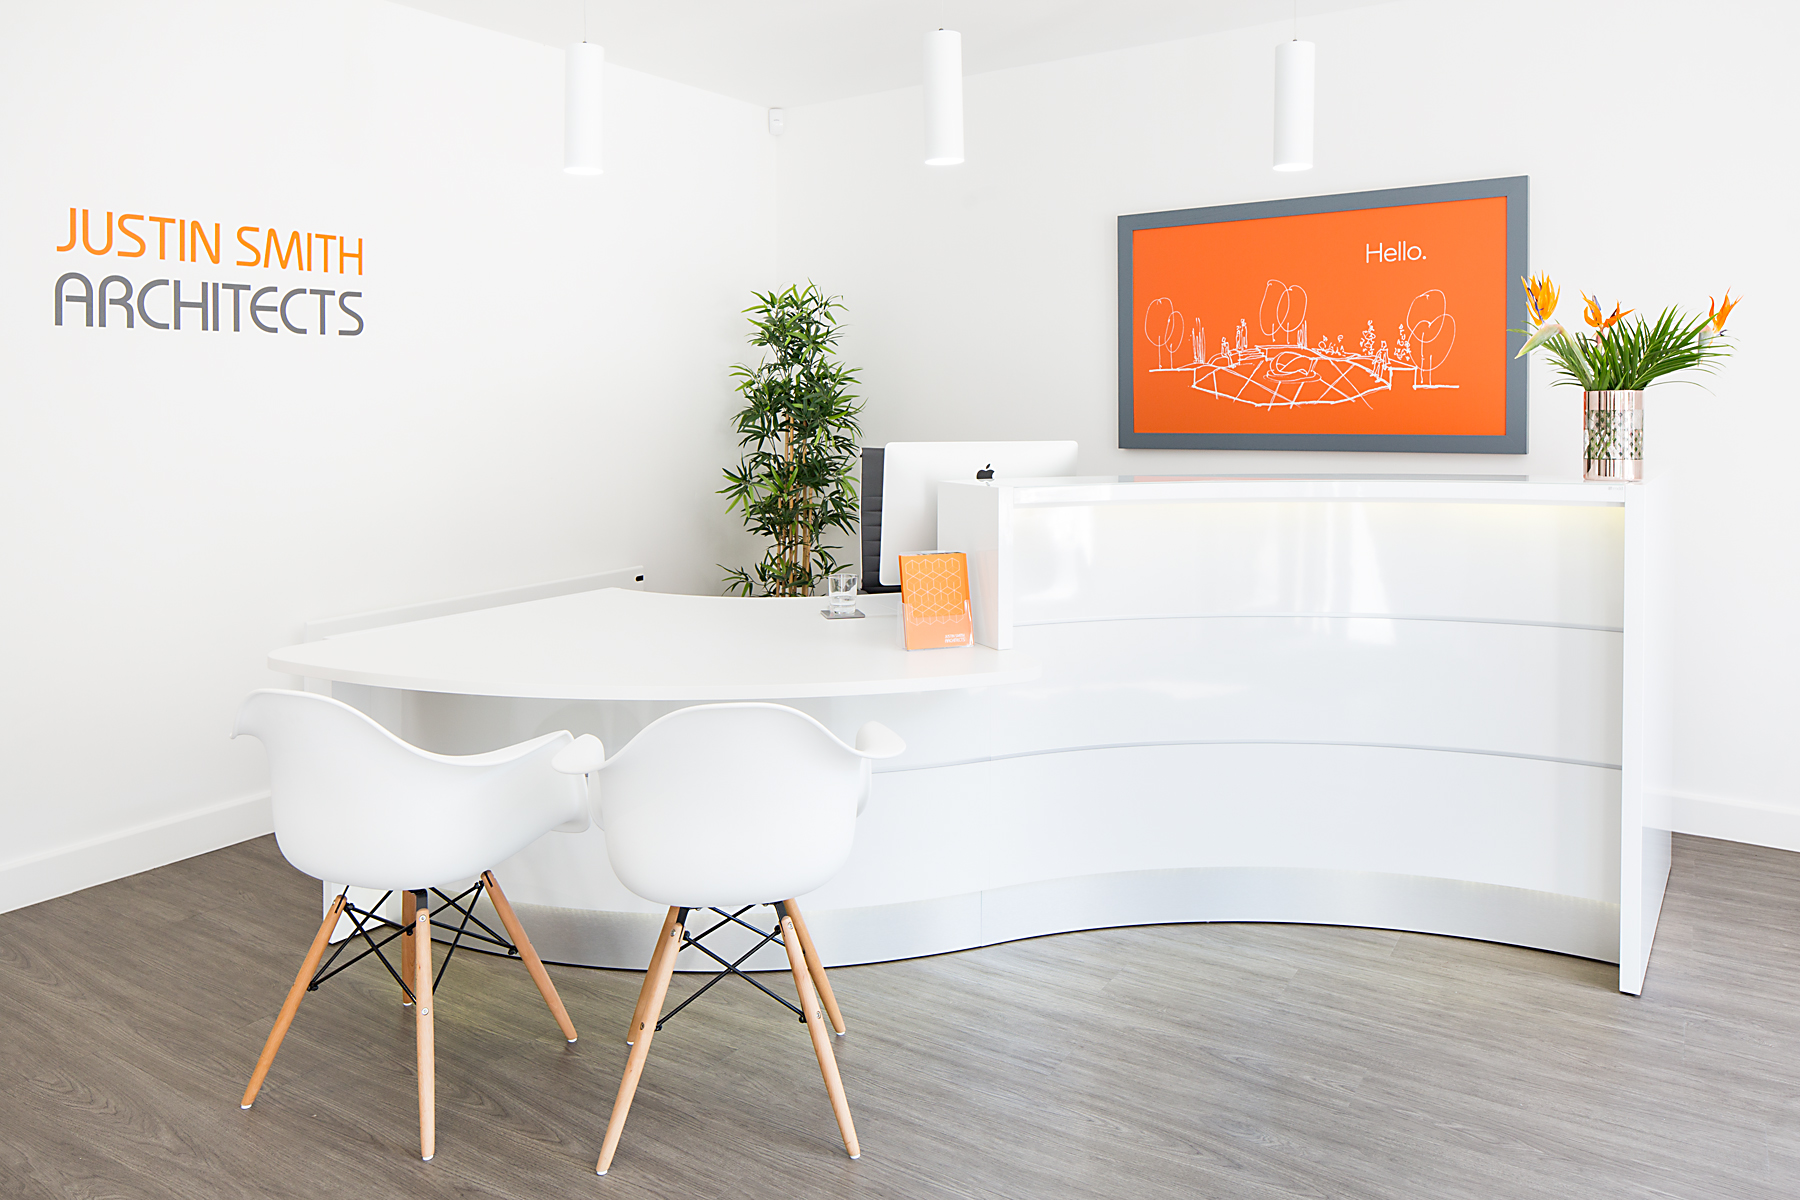 Architect office all white and gloss with bright orange sign behind desk saying 'hello' JSA by interior photographer Matthew Jones